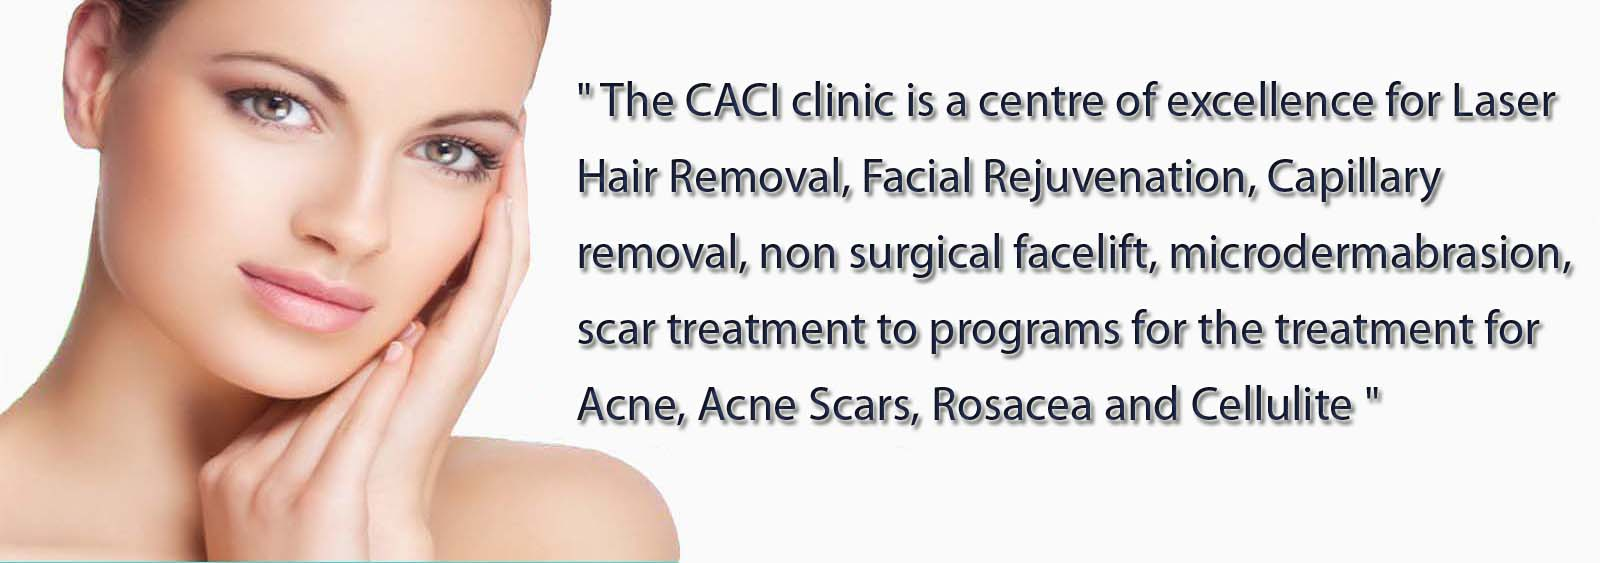 The Caci Clinic   Laser Hair Removal   Facial Rejuvenation ...